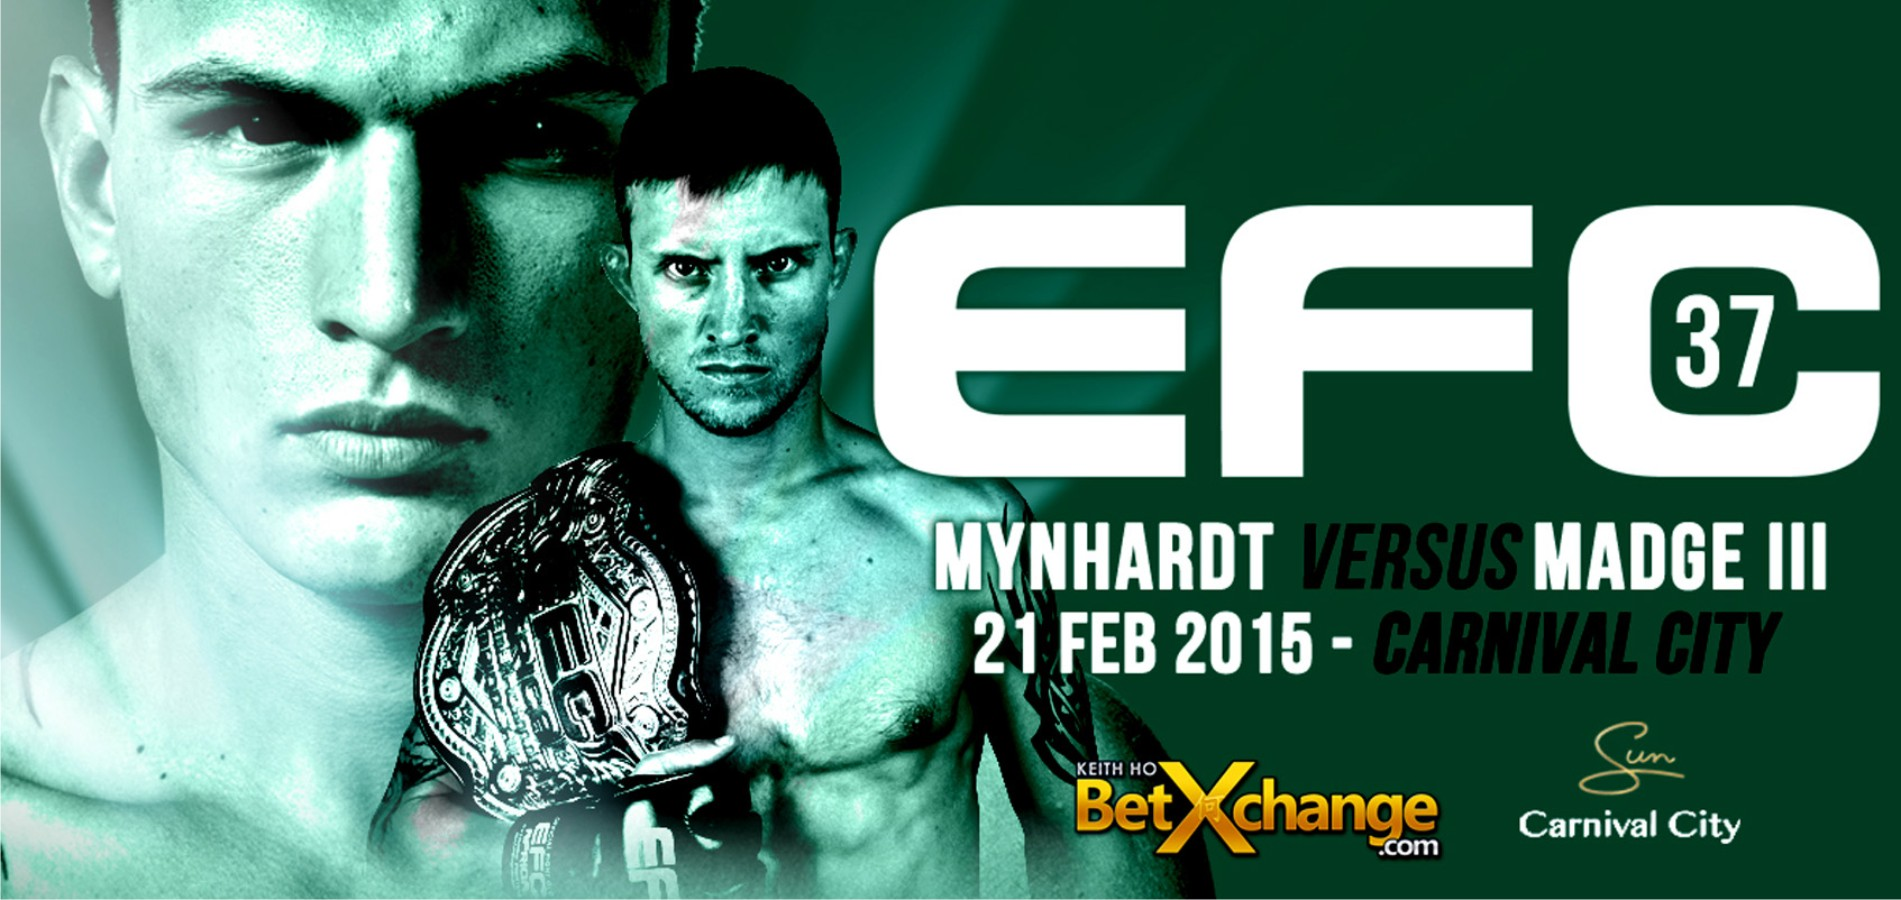 EFC 37 bringing a night of exciting MMA action to Carnival City